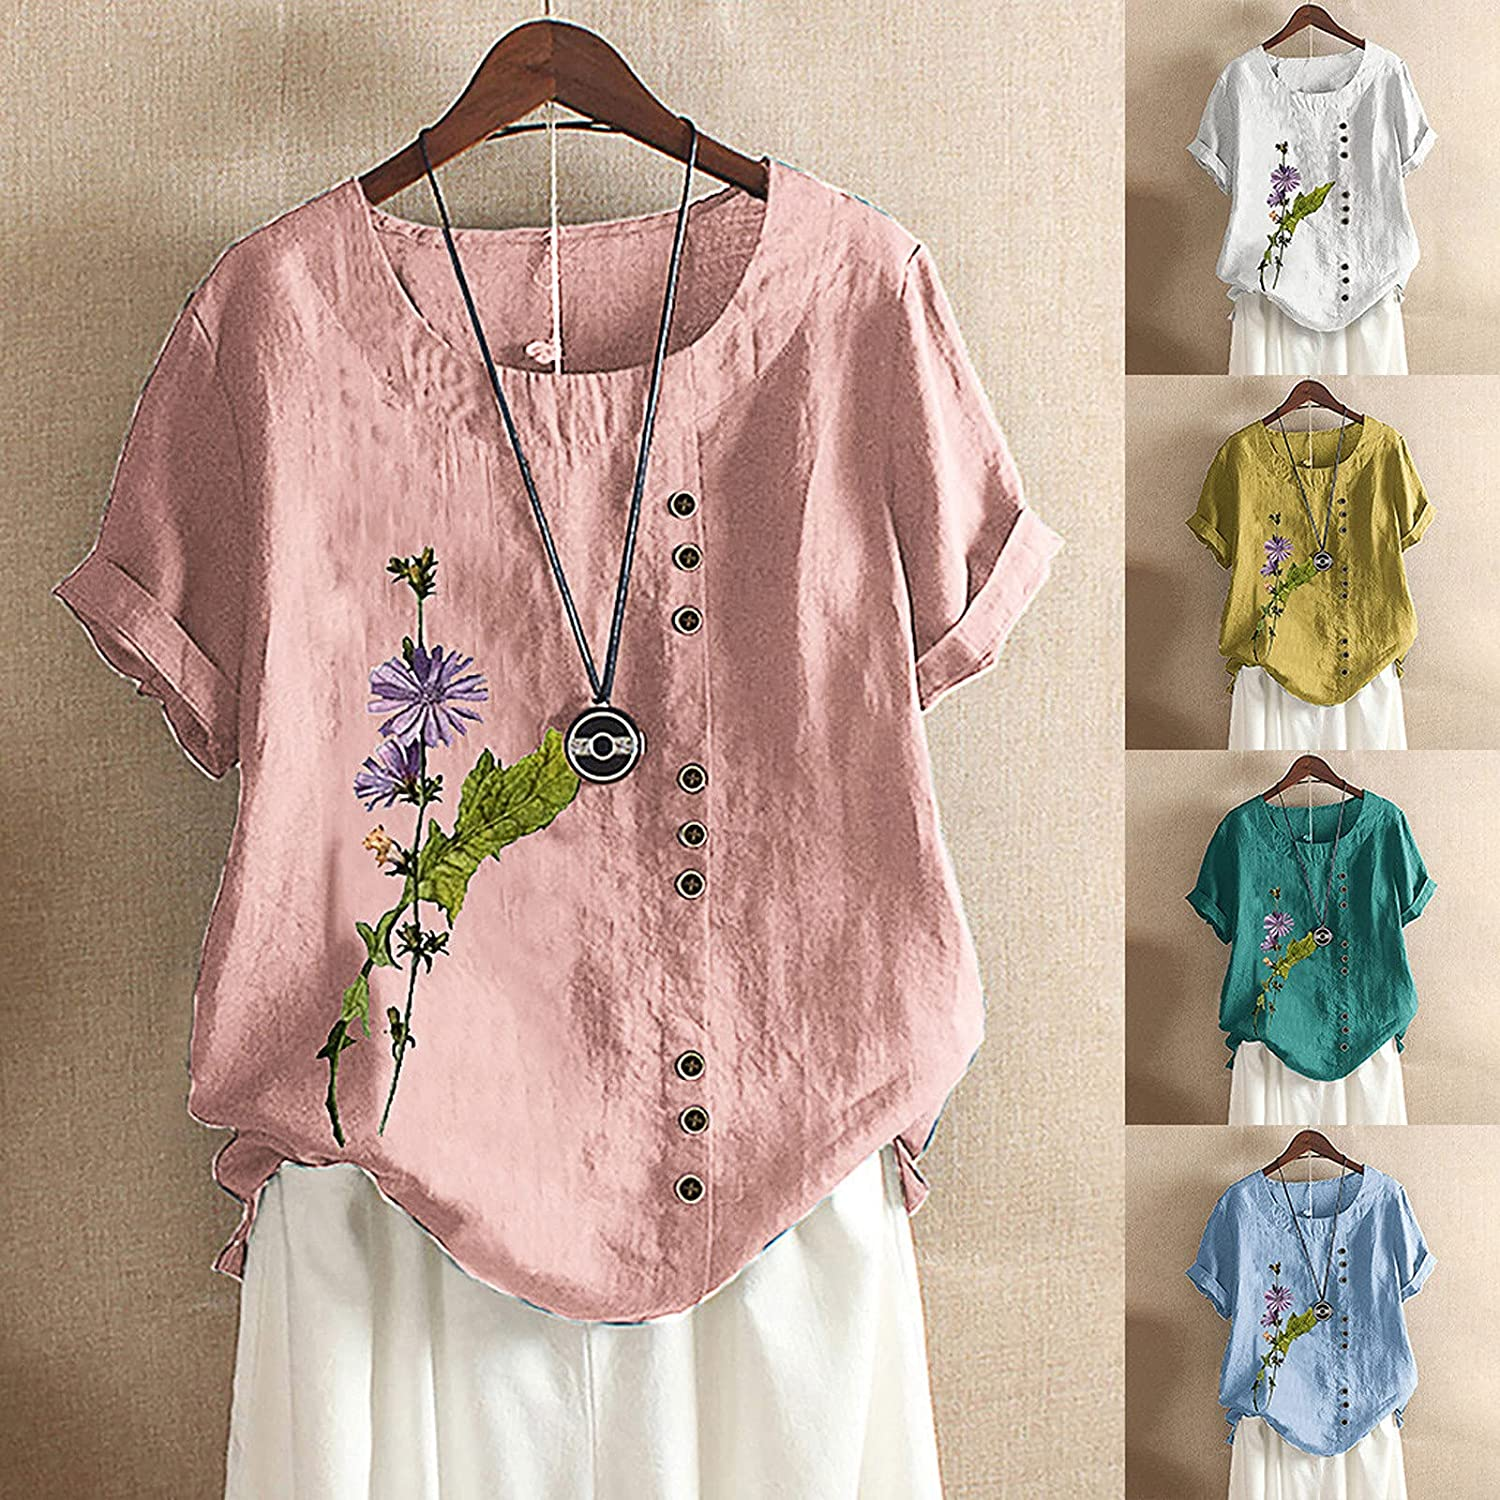 Women Casual Linen Tops, Solid Color Tees Crew Neck Loose Flower Print Vintage Tops Tank Blouse Cut-out Shirt